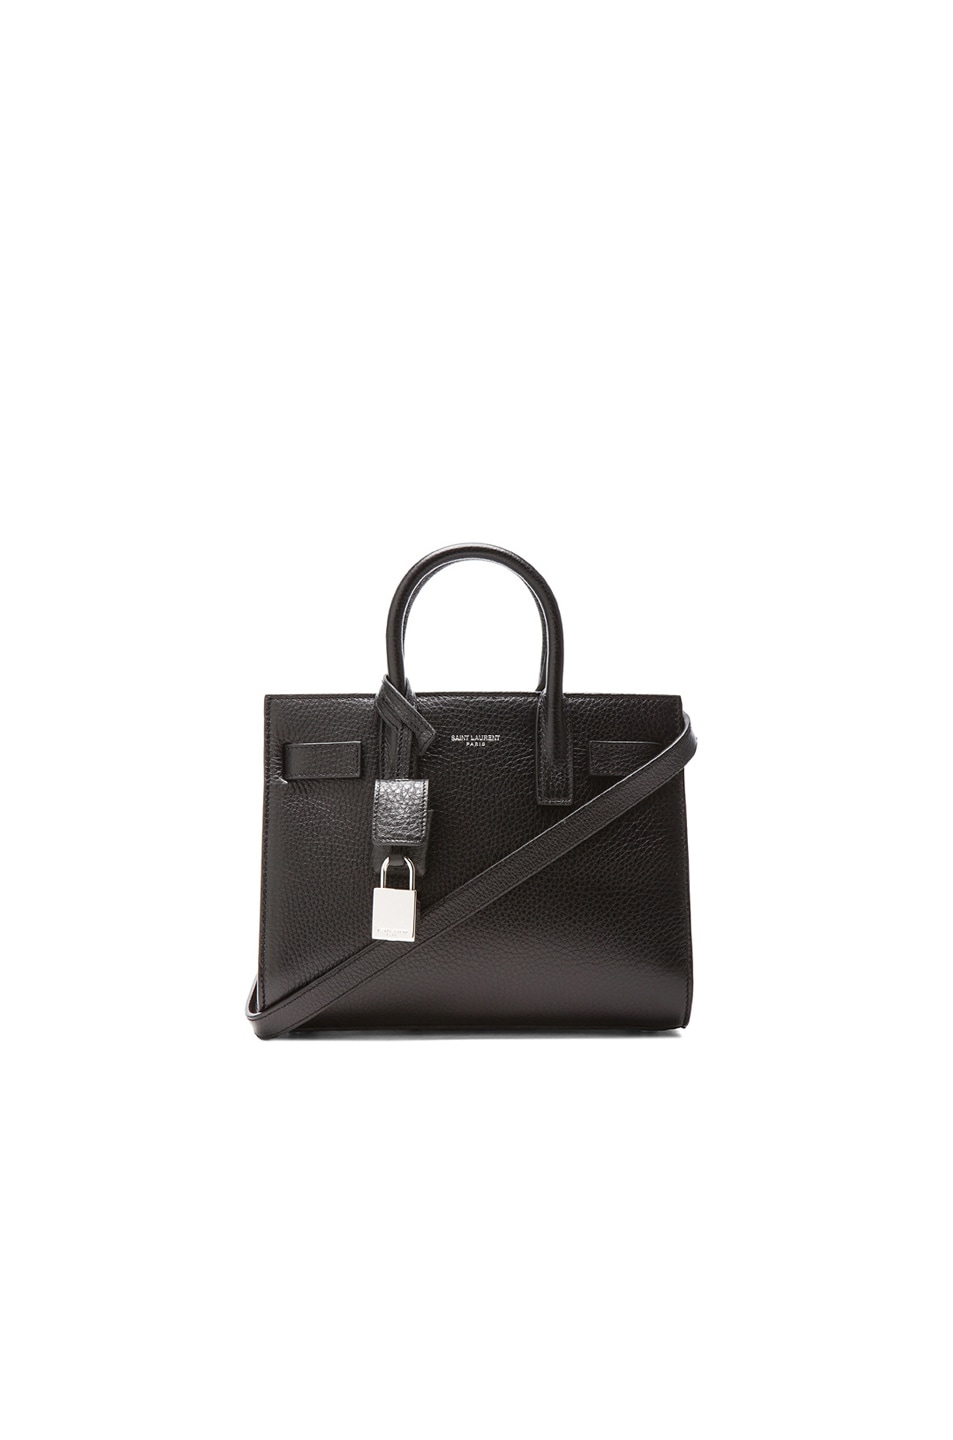 Image 1 of Saint Laurent Nano Sac De Jour Carryall Bag in Black